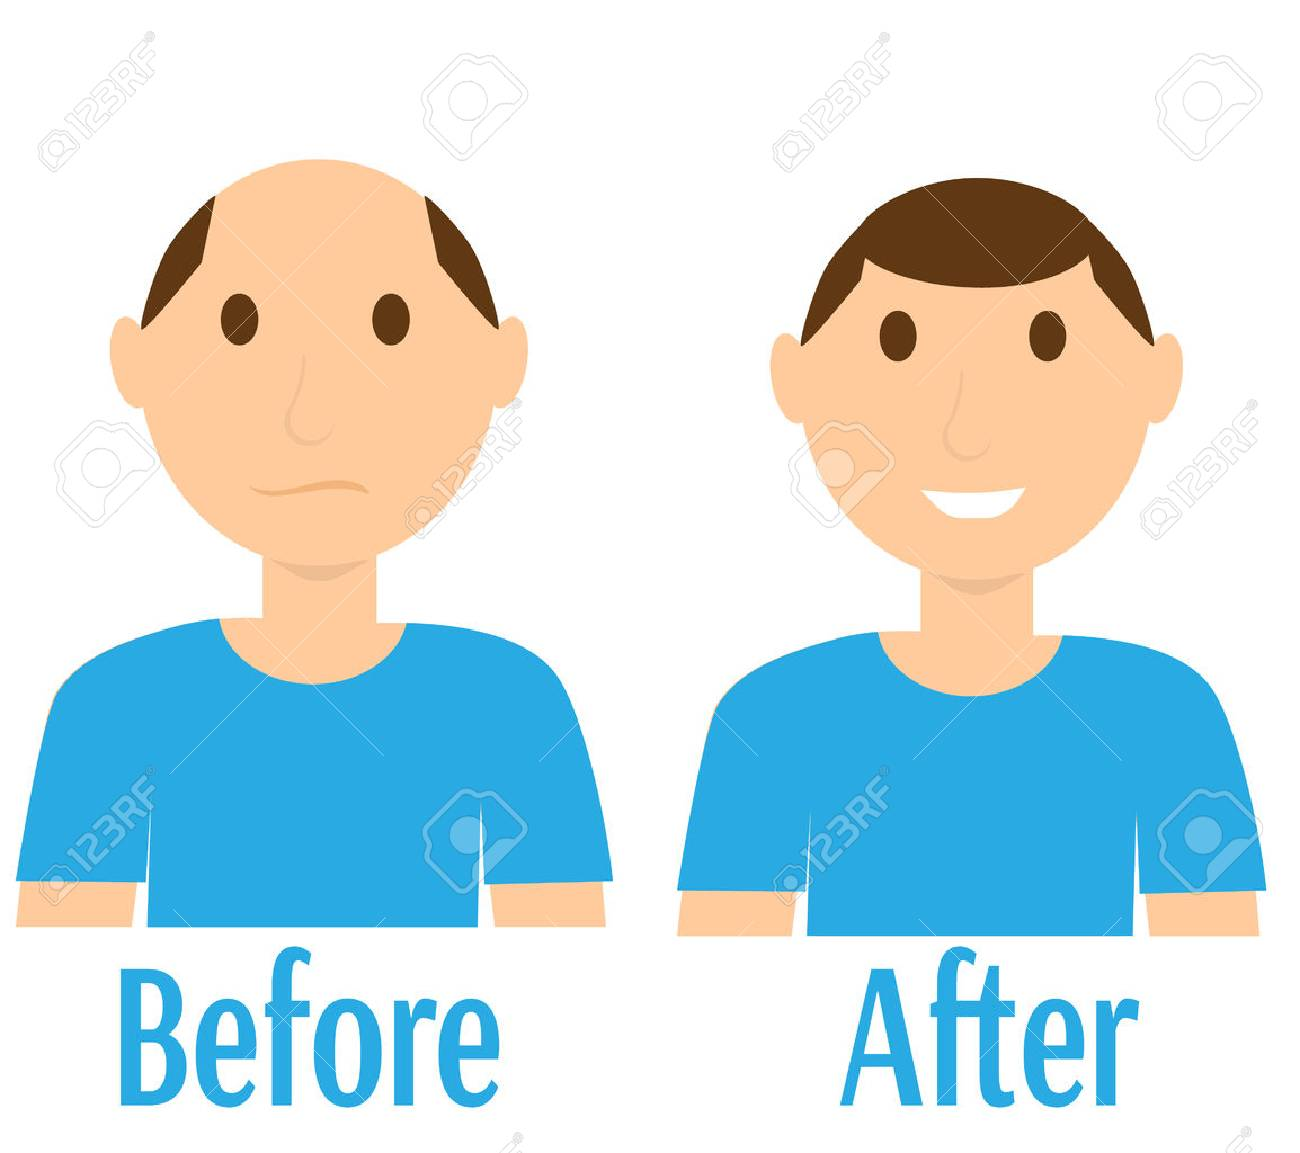 Before and after hair transplantation.